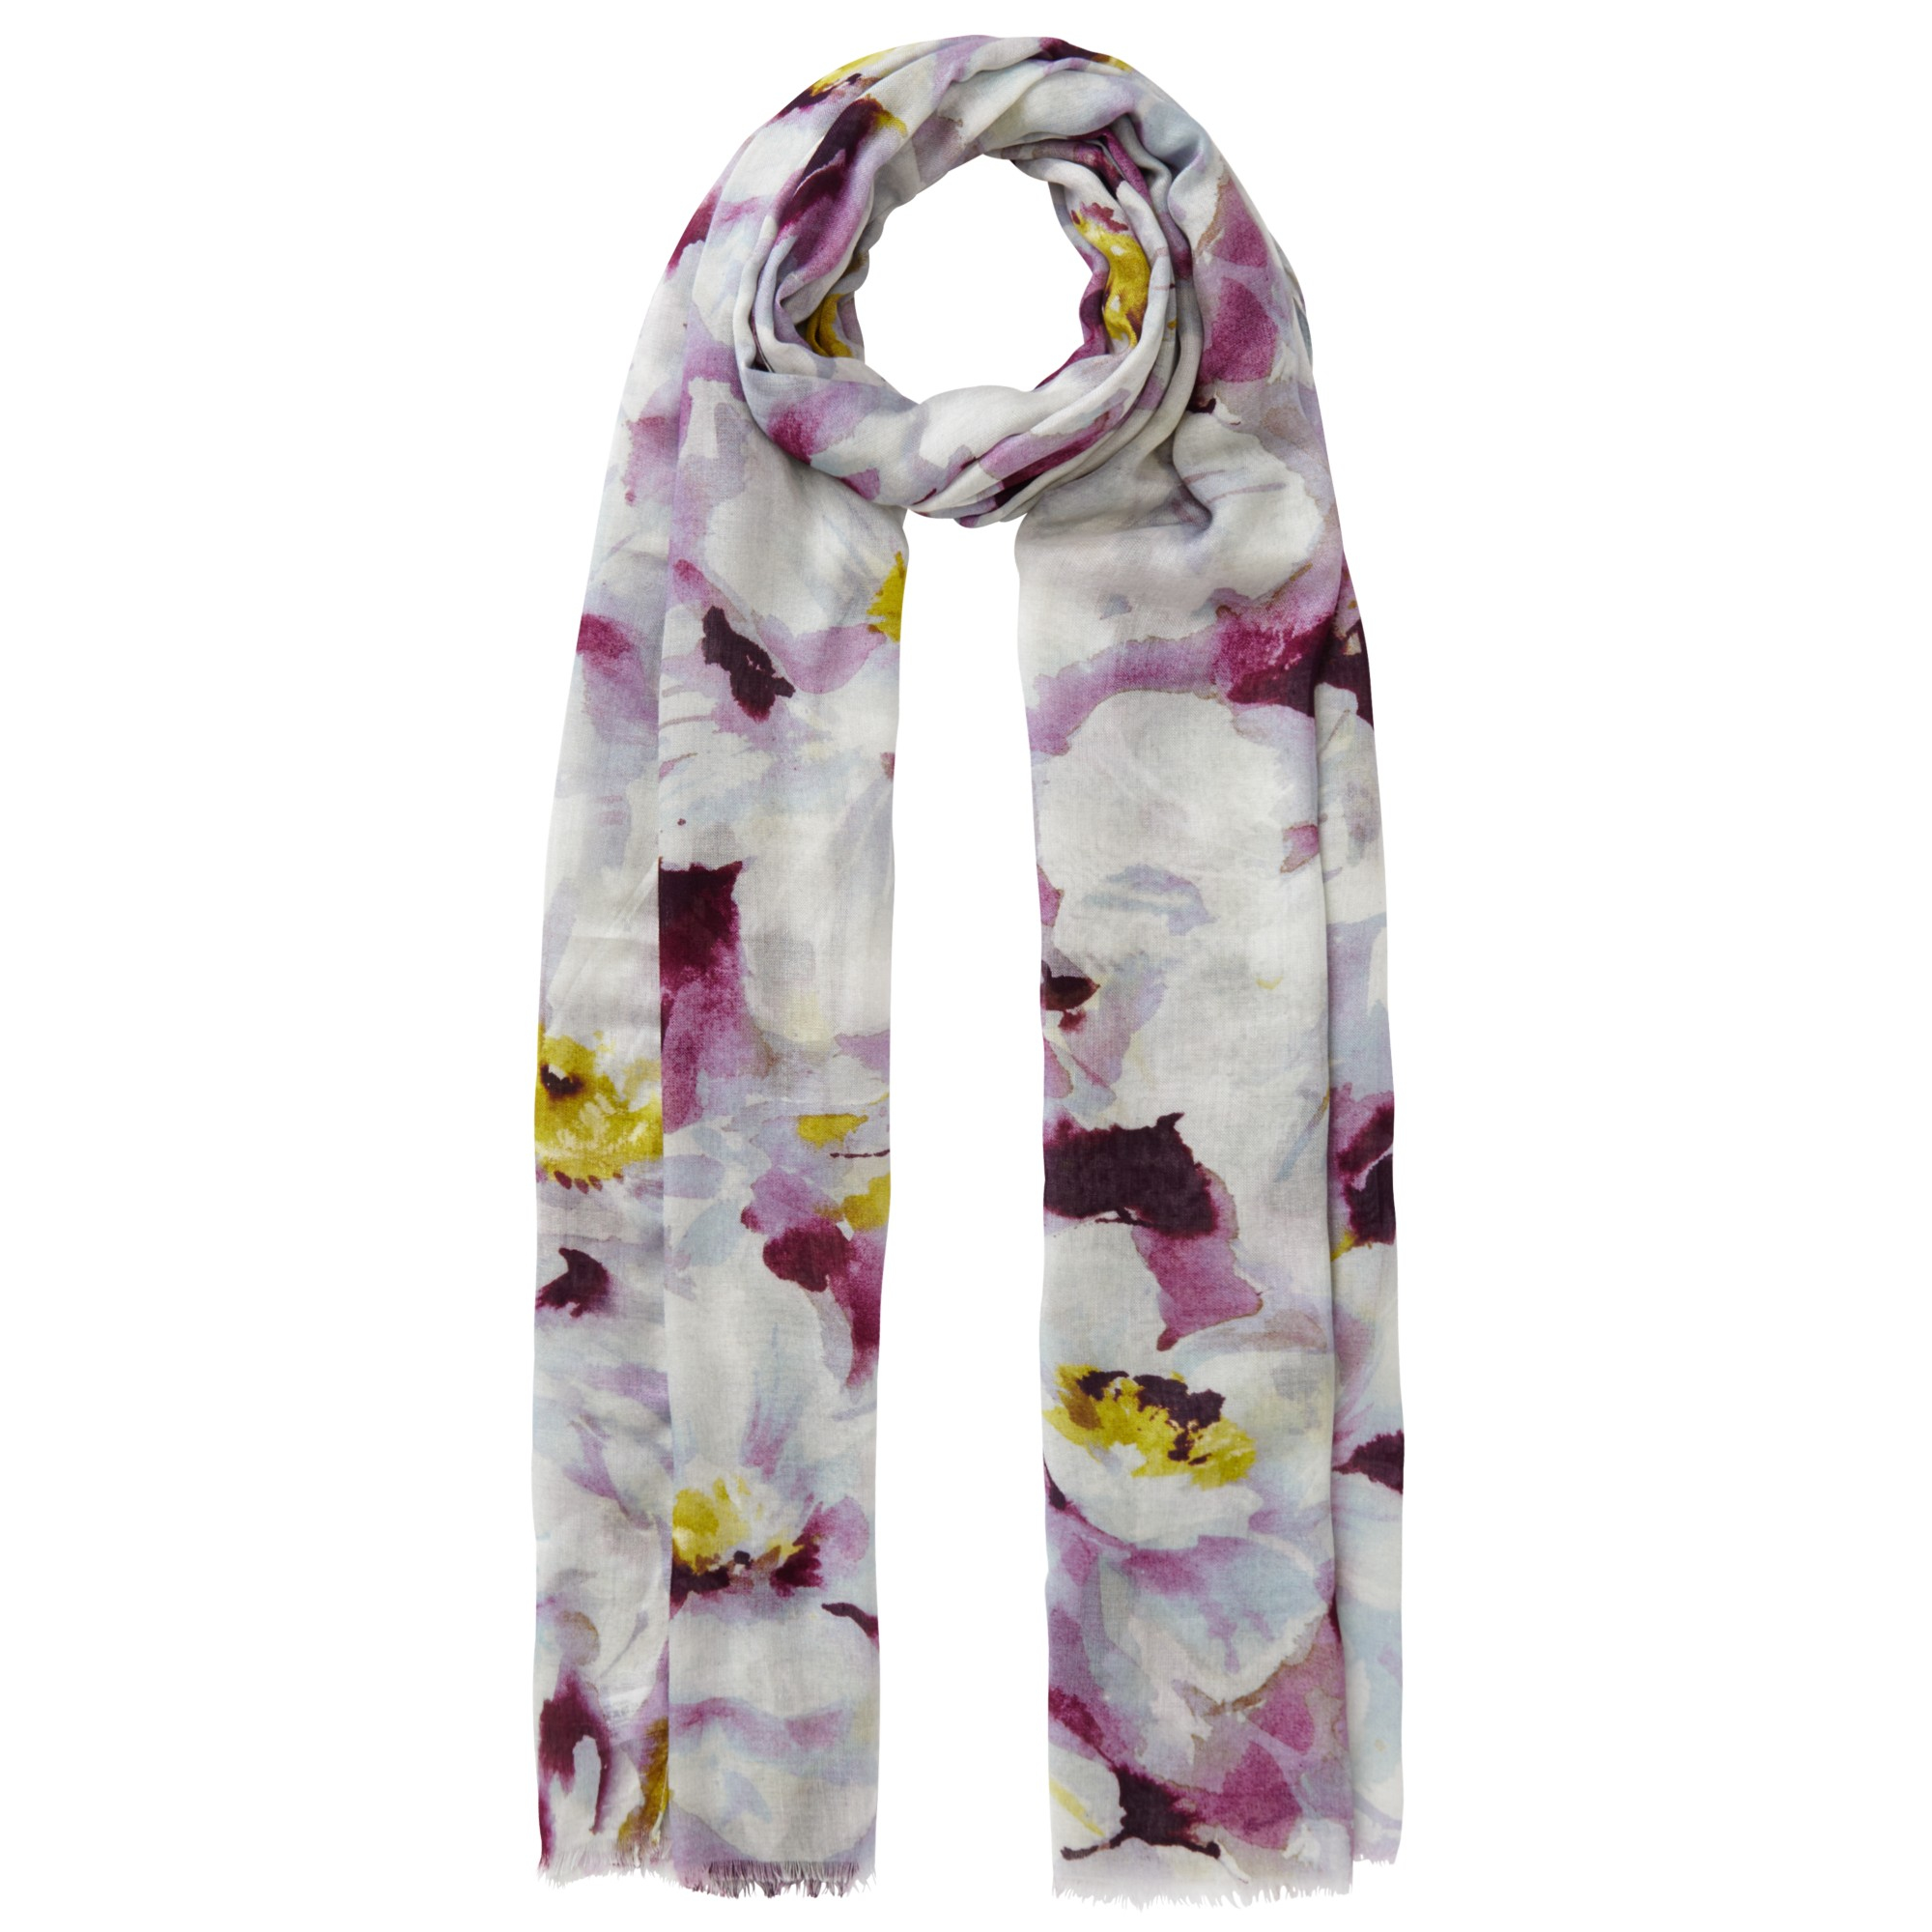 lewis large watercolour floral print scarf in purple